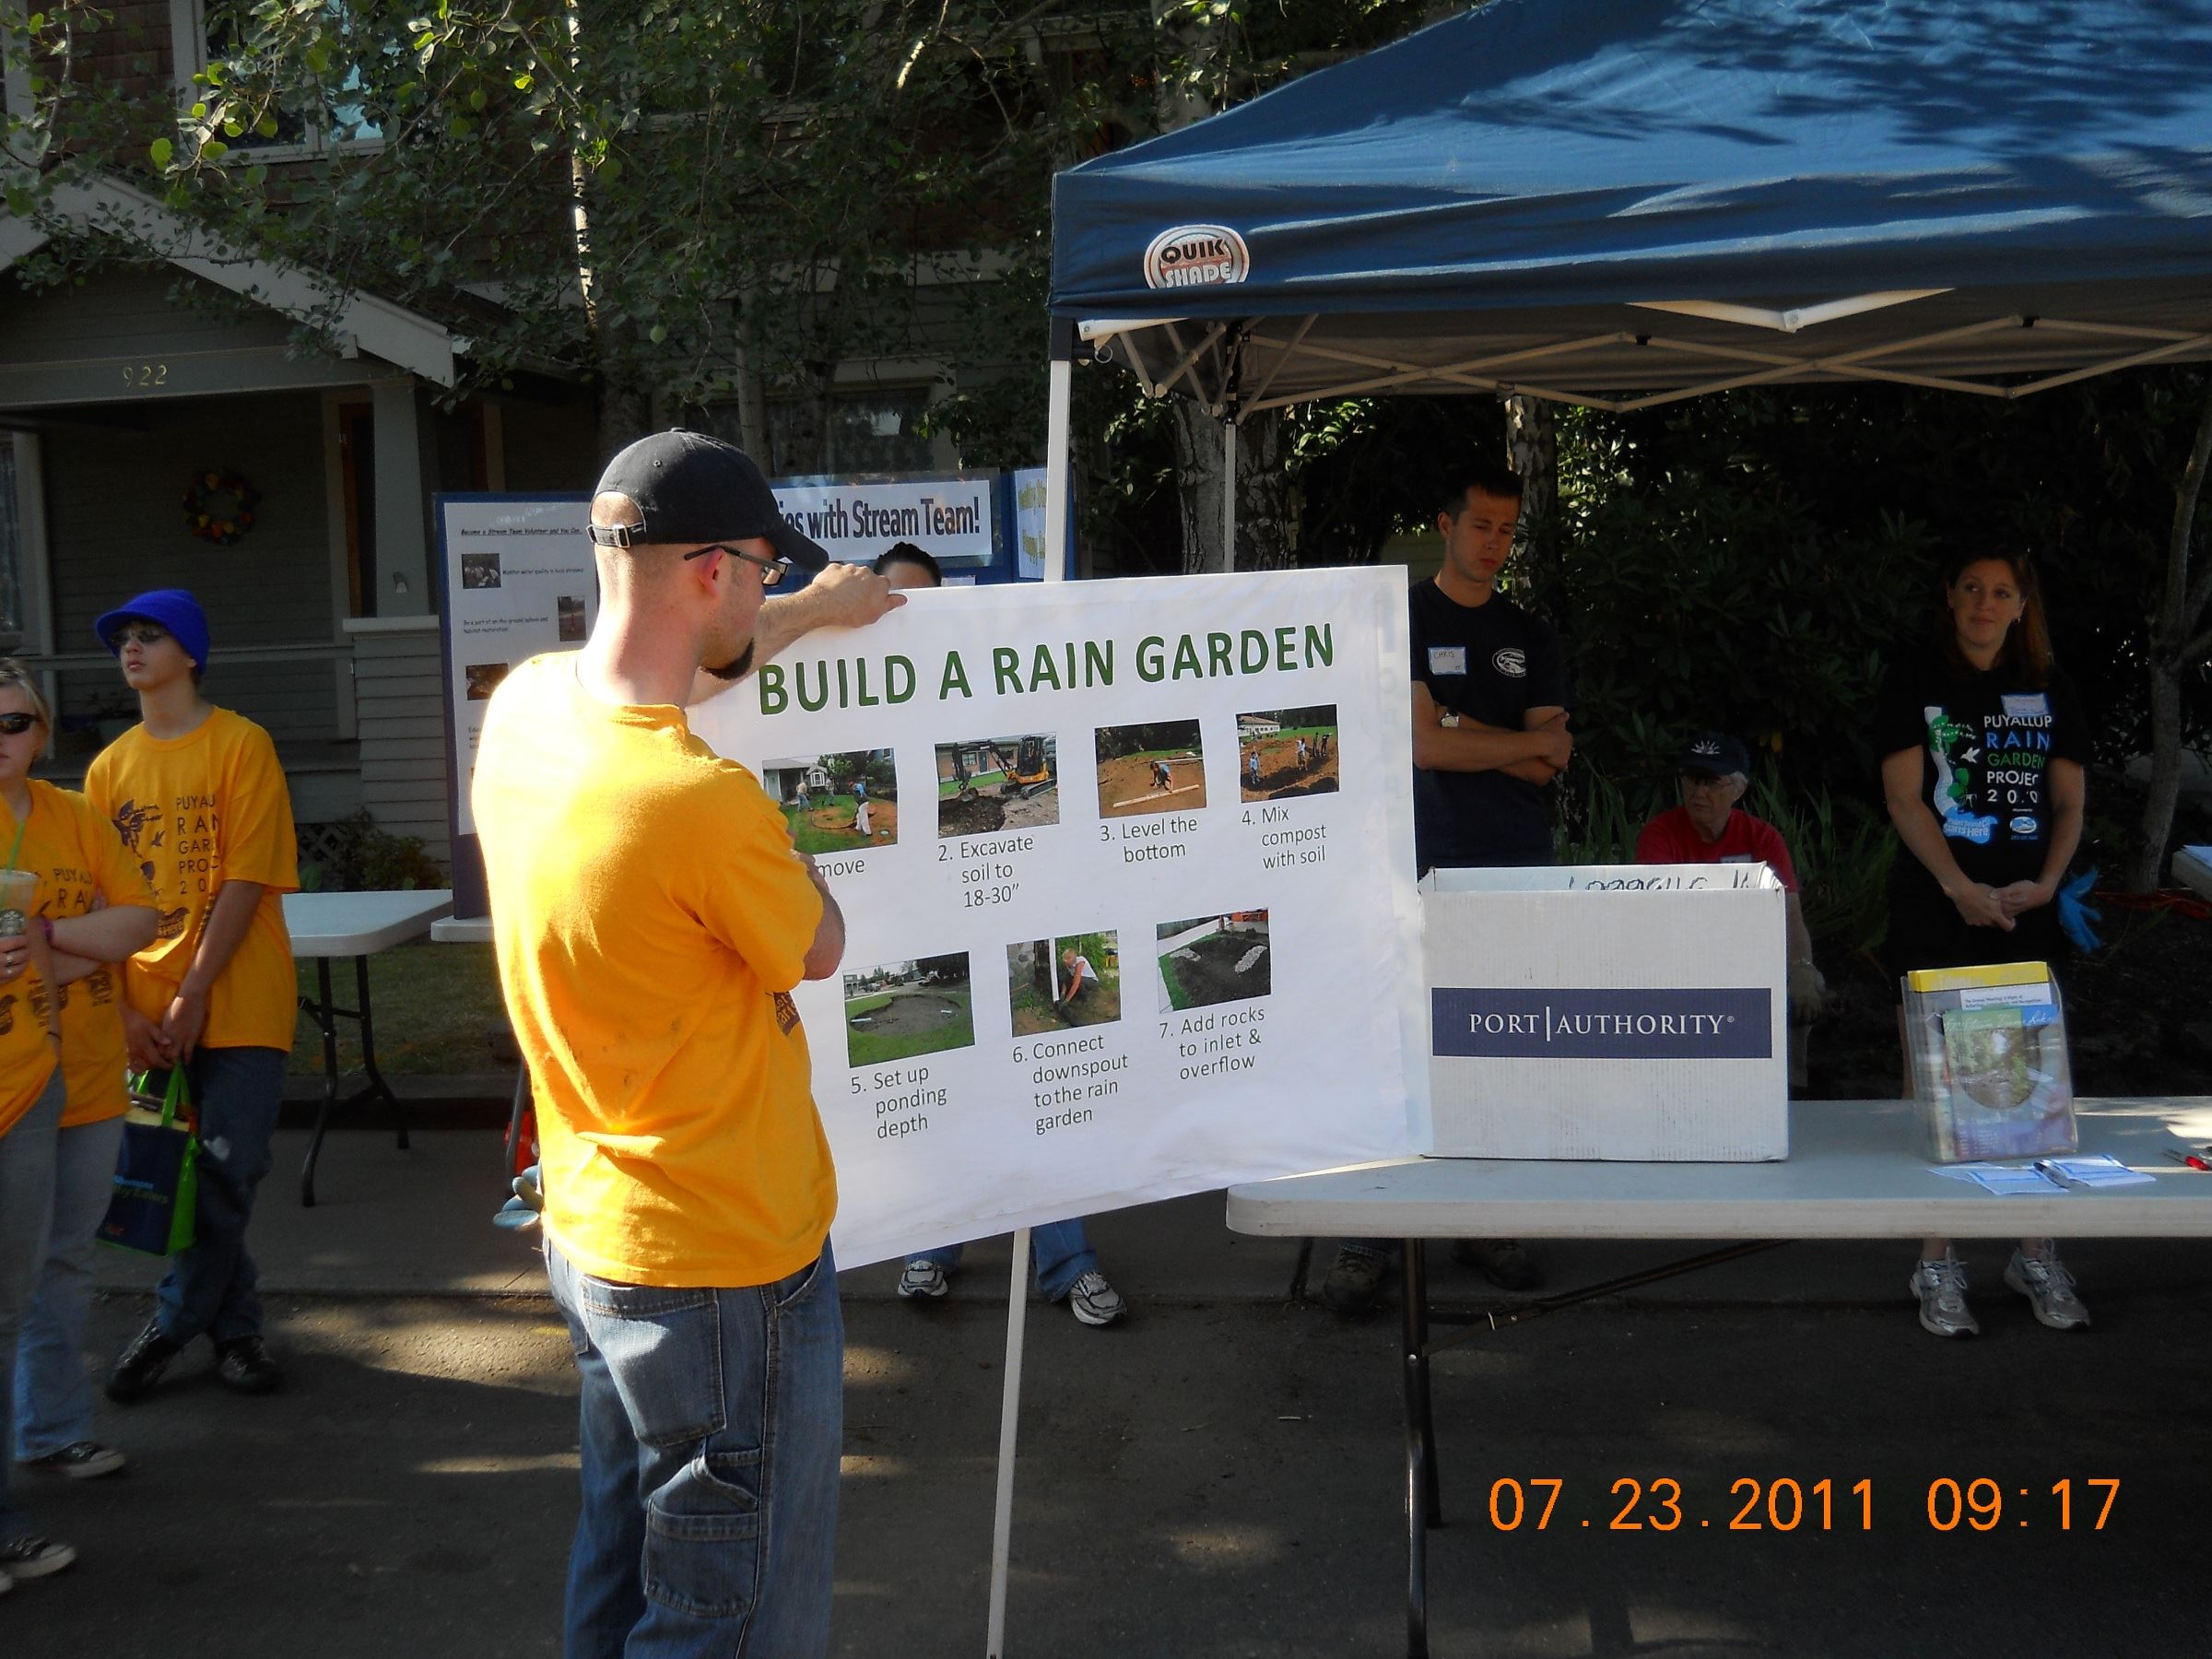 Setting up the Rain Garden Event